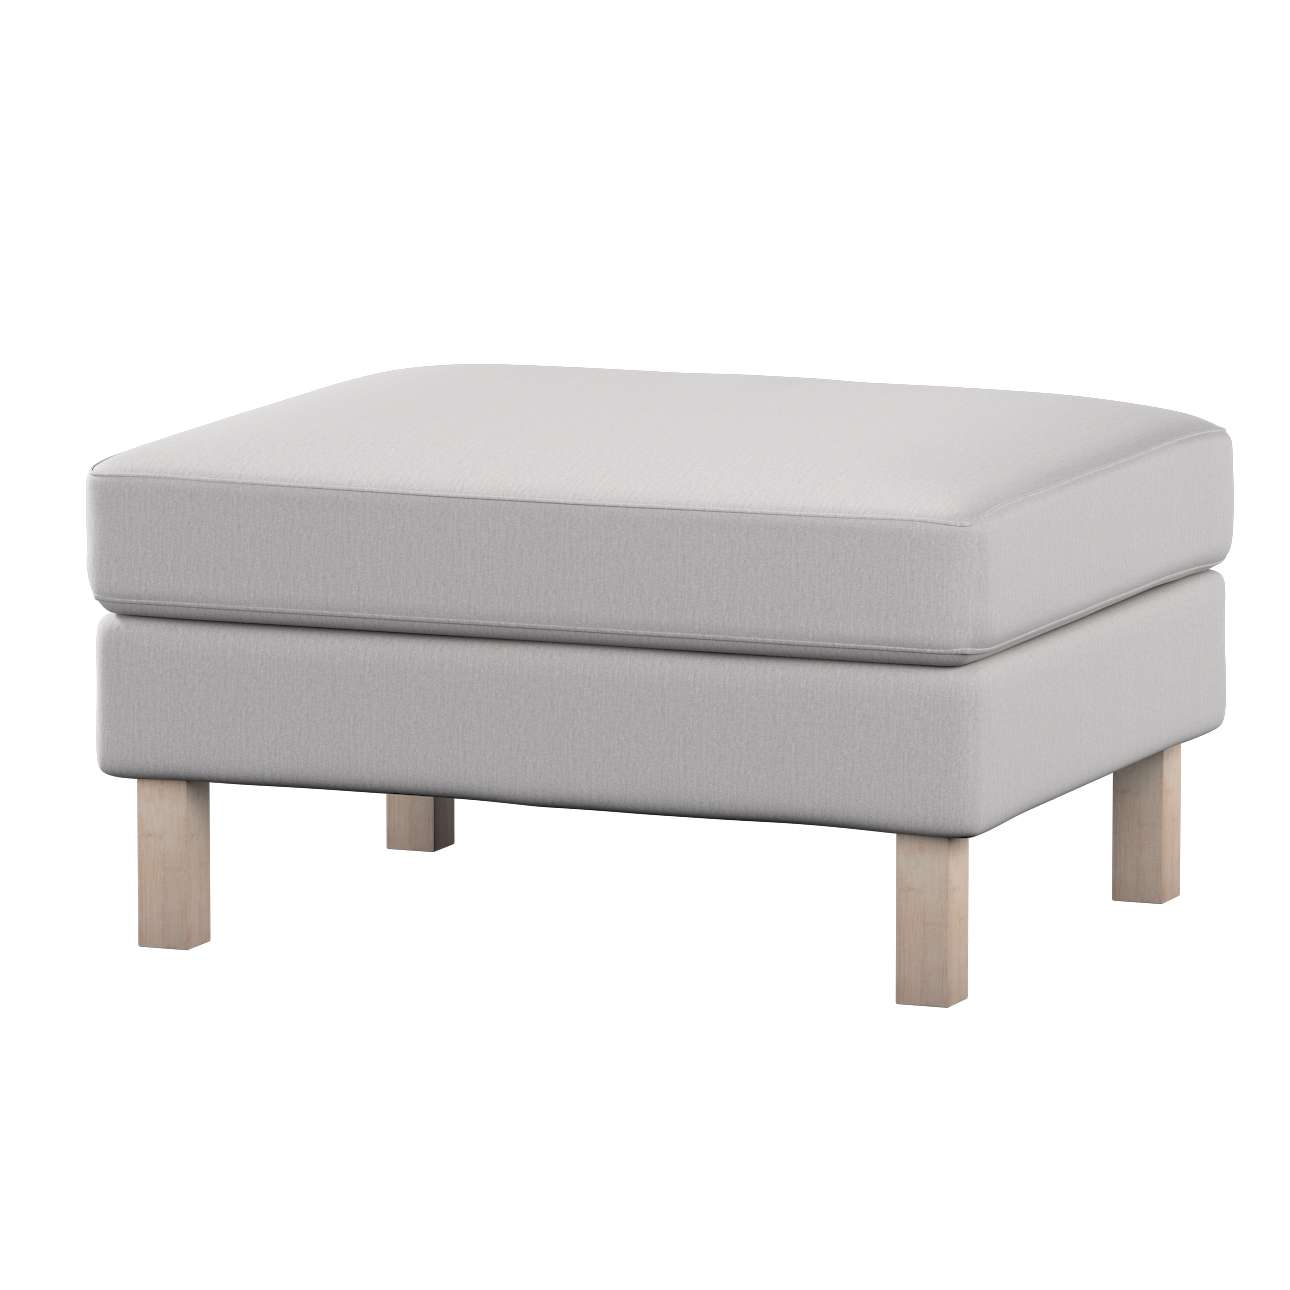 Karlstad footstool cover Karlstad footstool cover in collection Chenille, fabric: 702-23